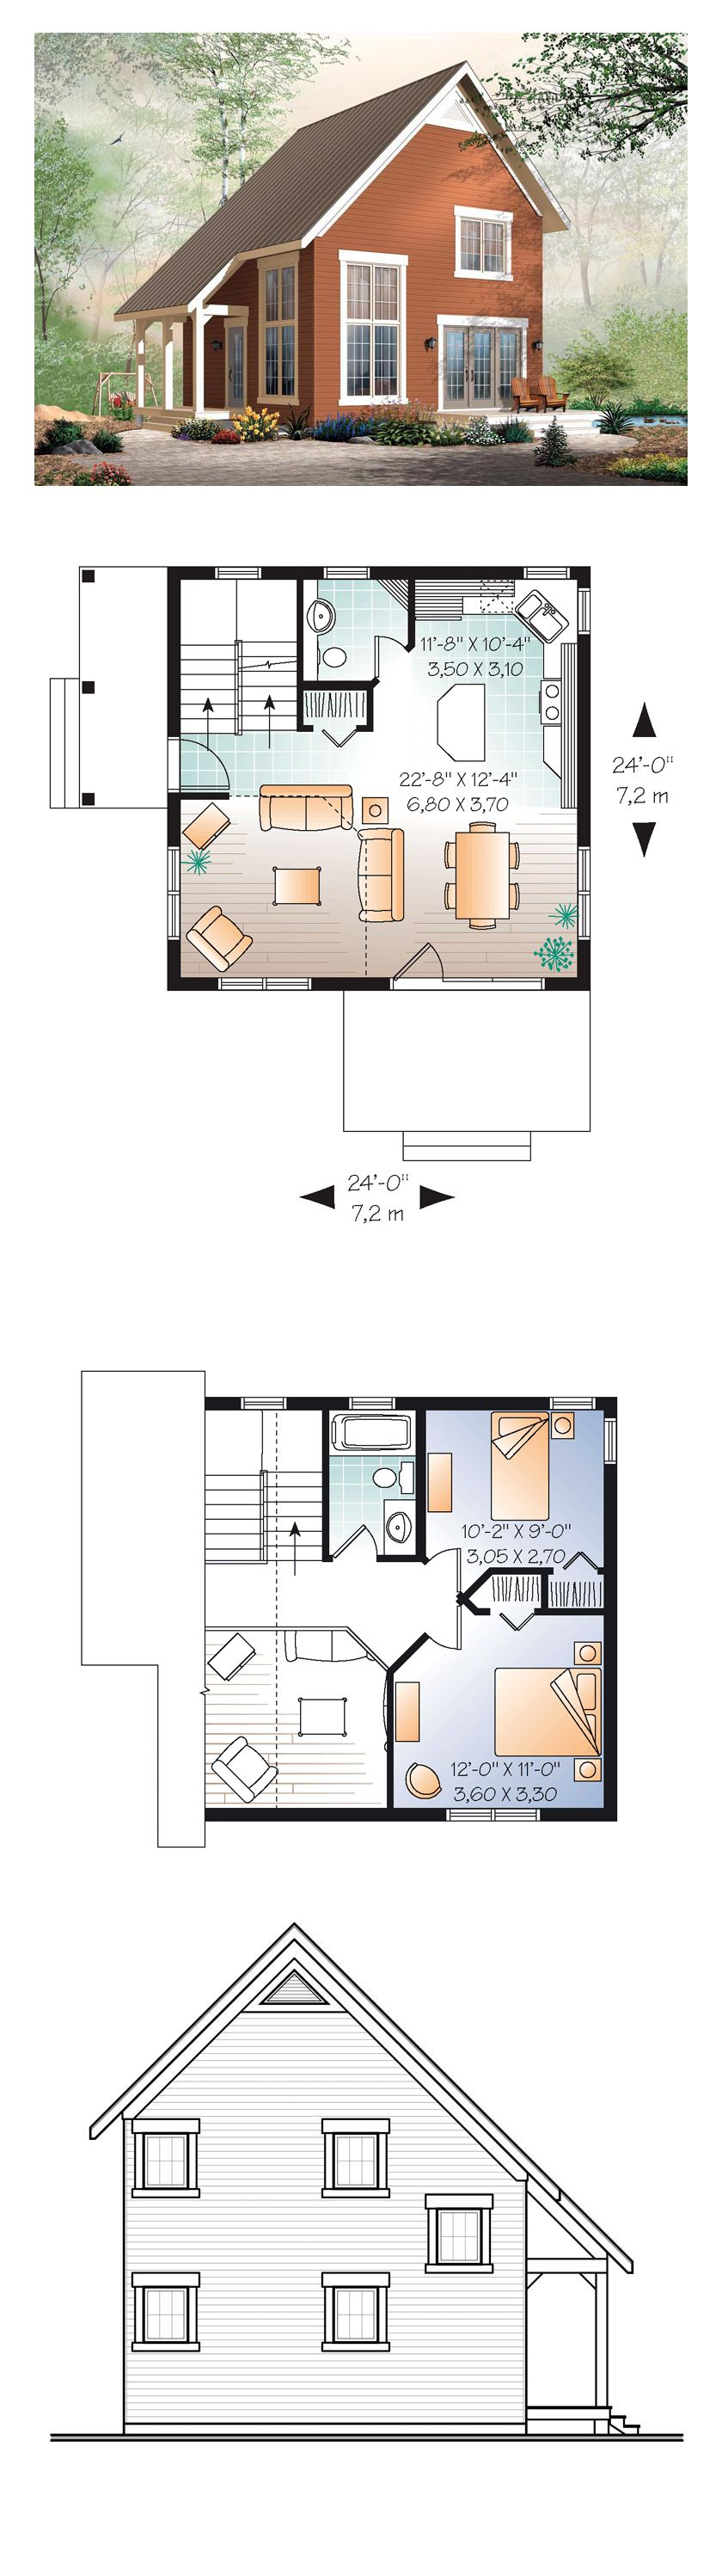 Plan Roulotte En Bois traditional style house plan 76149 with 2 bed, 2 bath